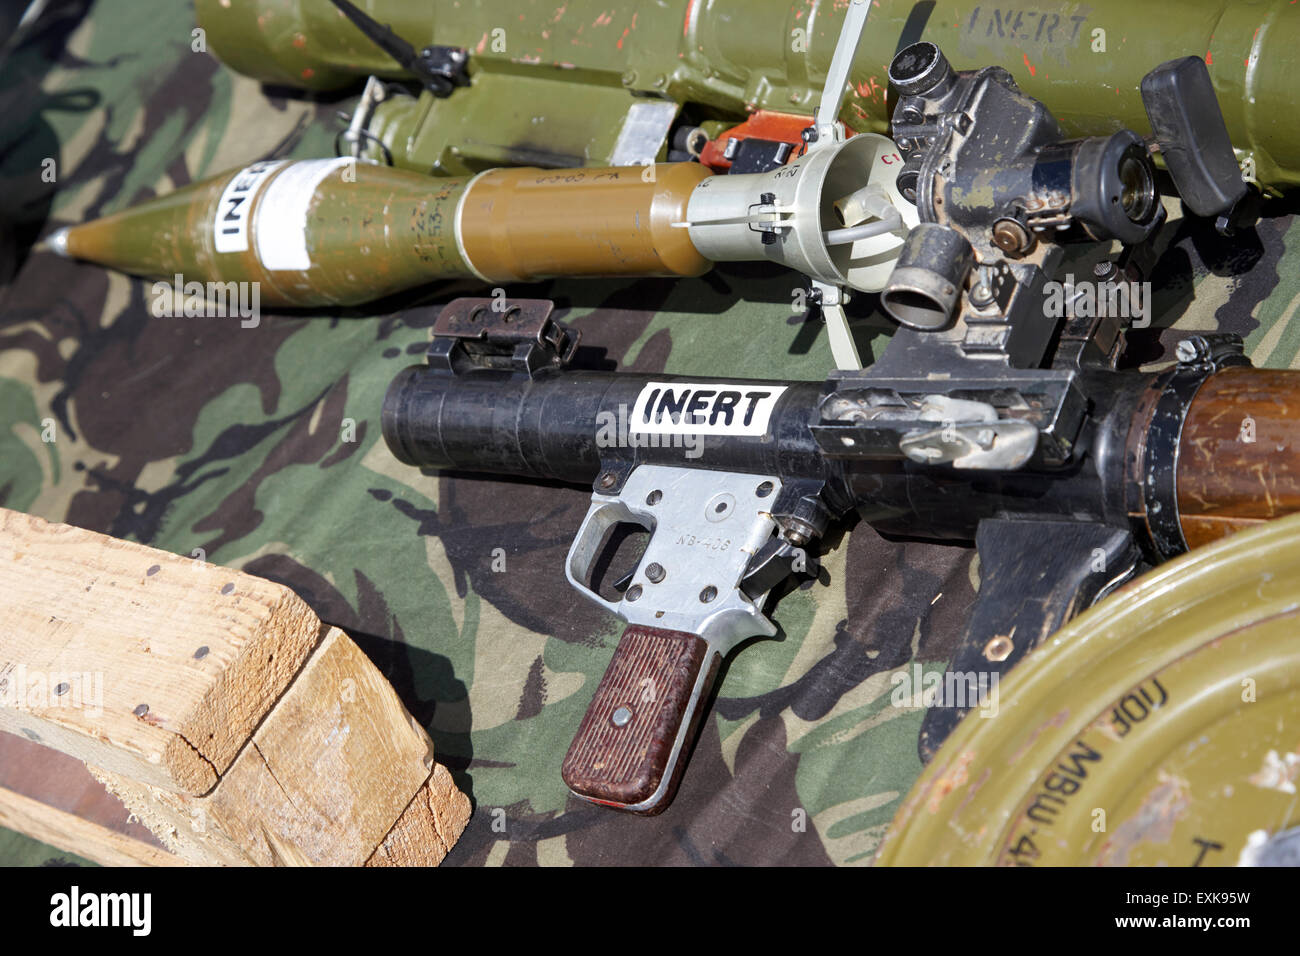 inert rpg rocket propelled grenade used for military training purposes recovered from afghanistan - Stock Image